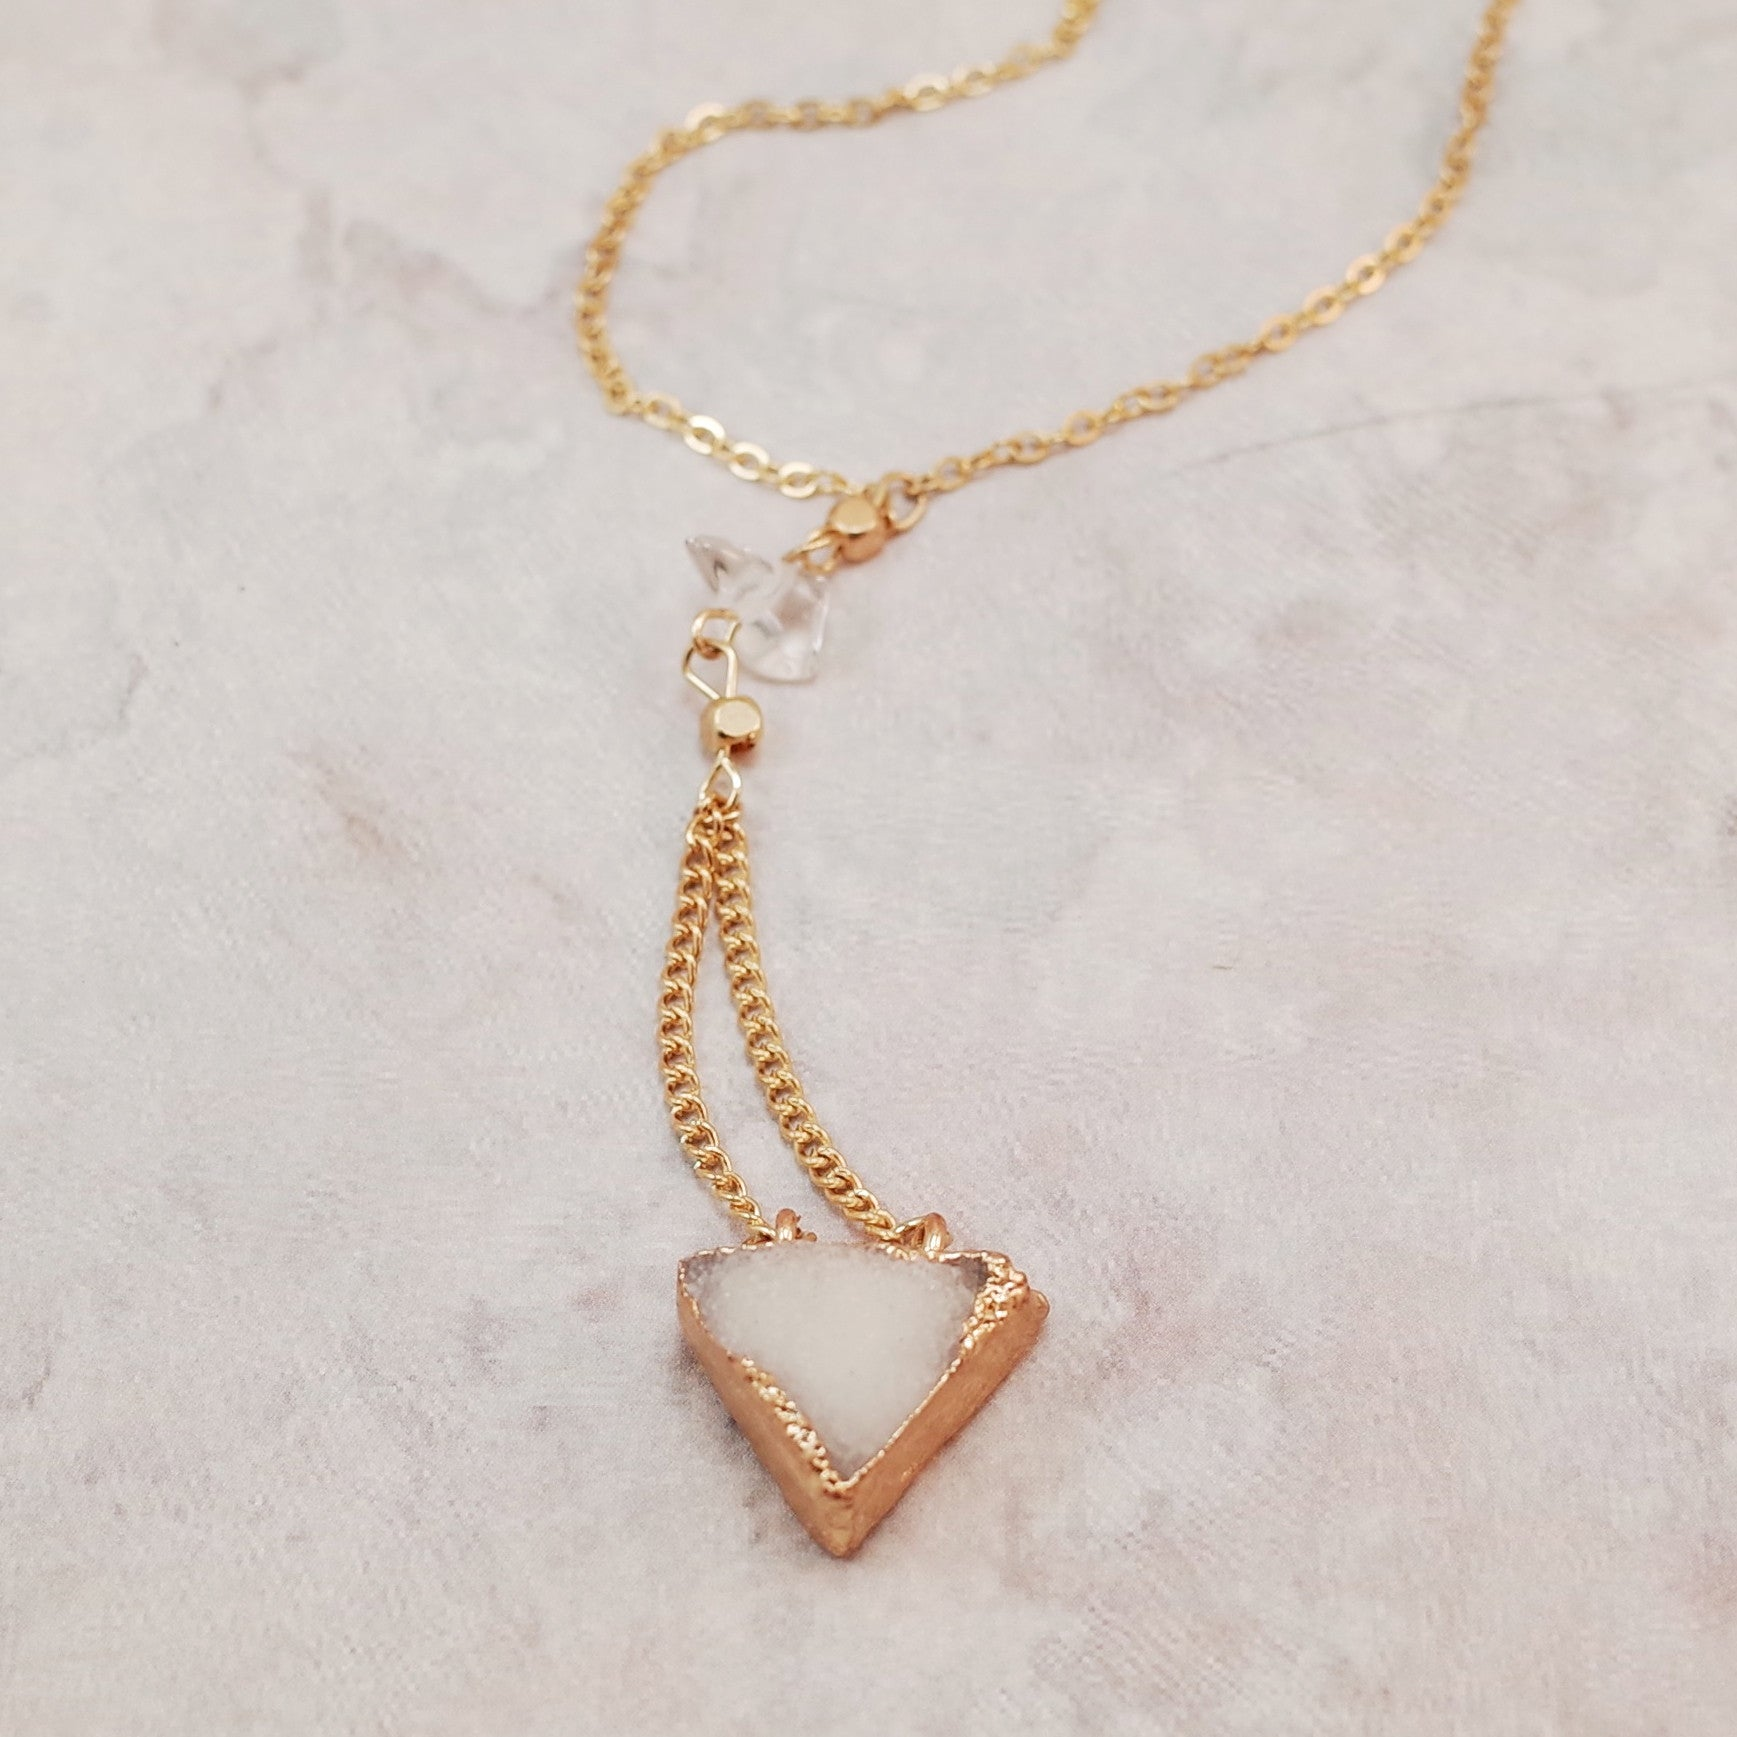 precious french semi stone necklace connection sjhce images htm woman product loading collections pendant